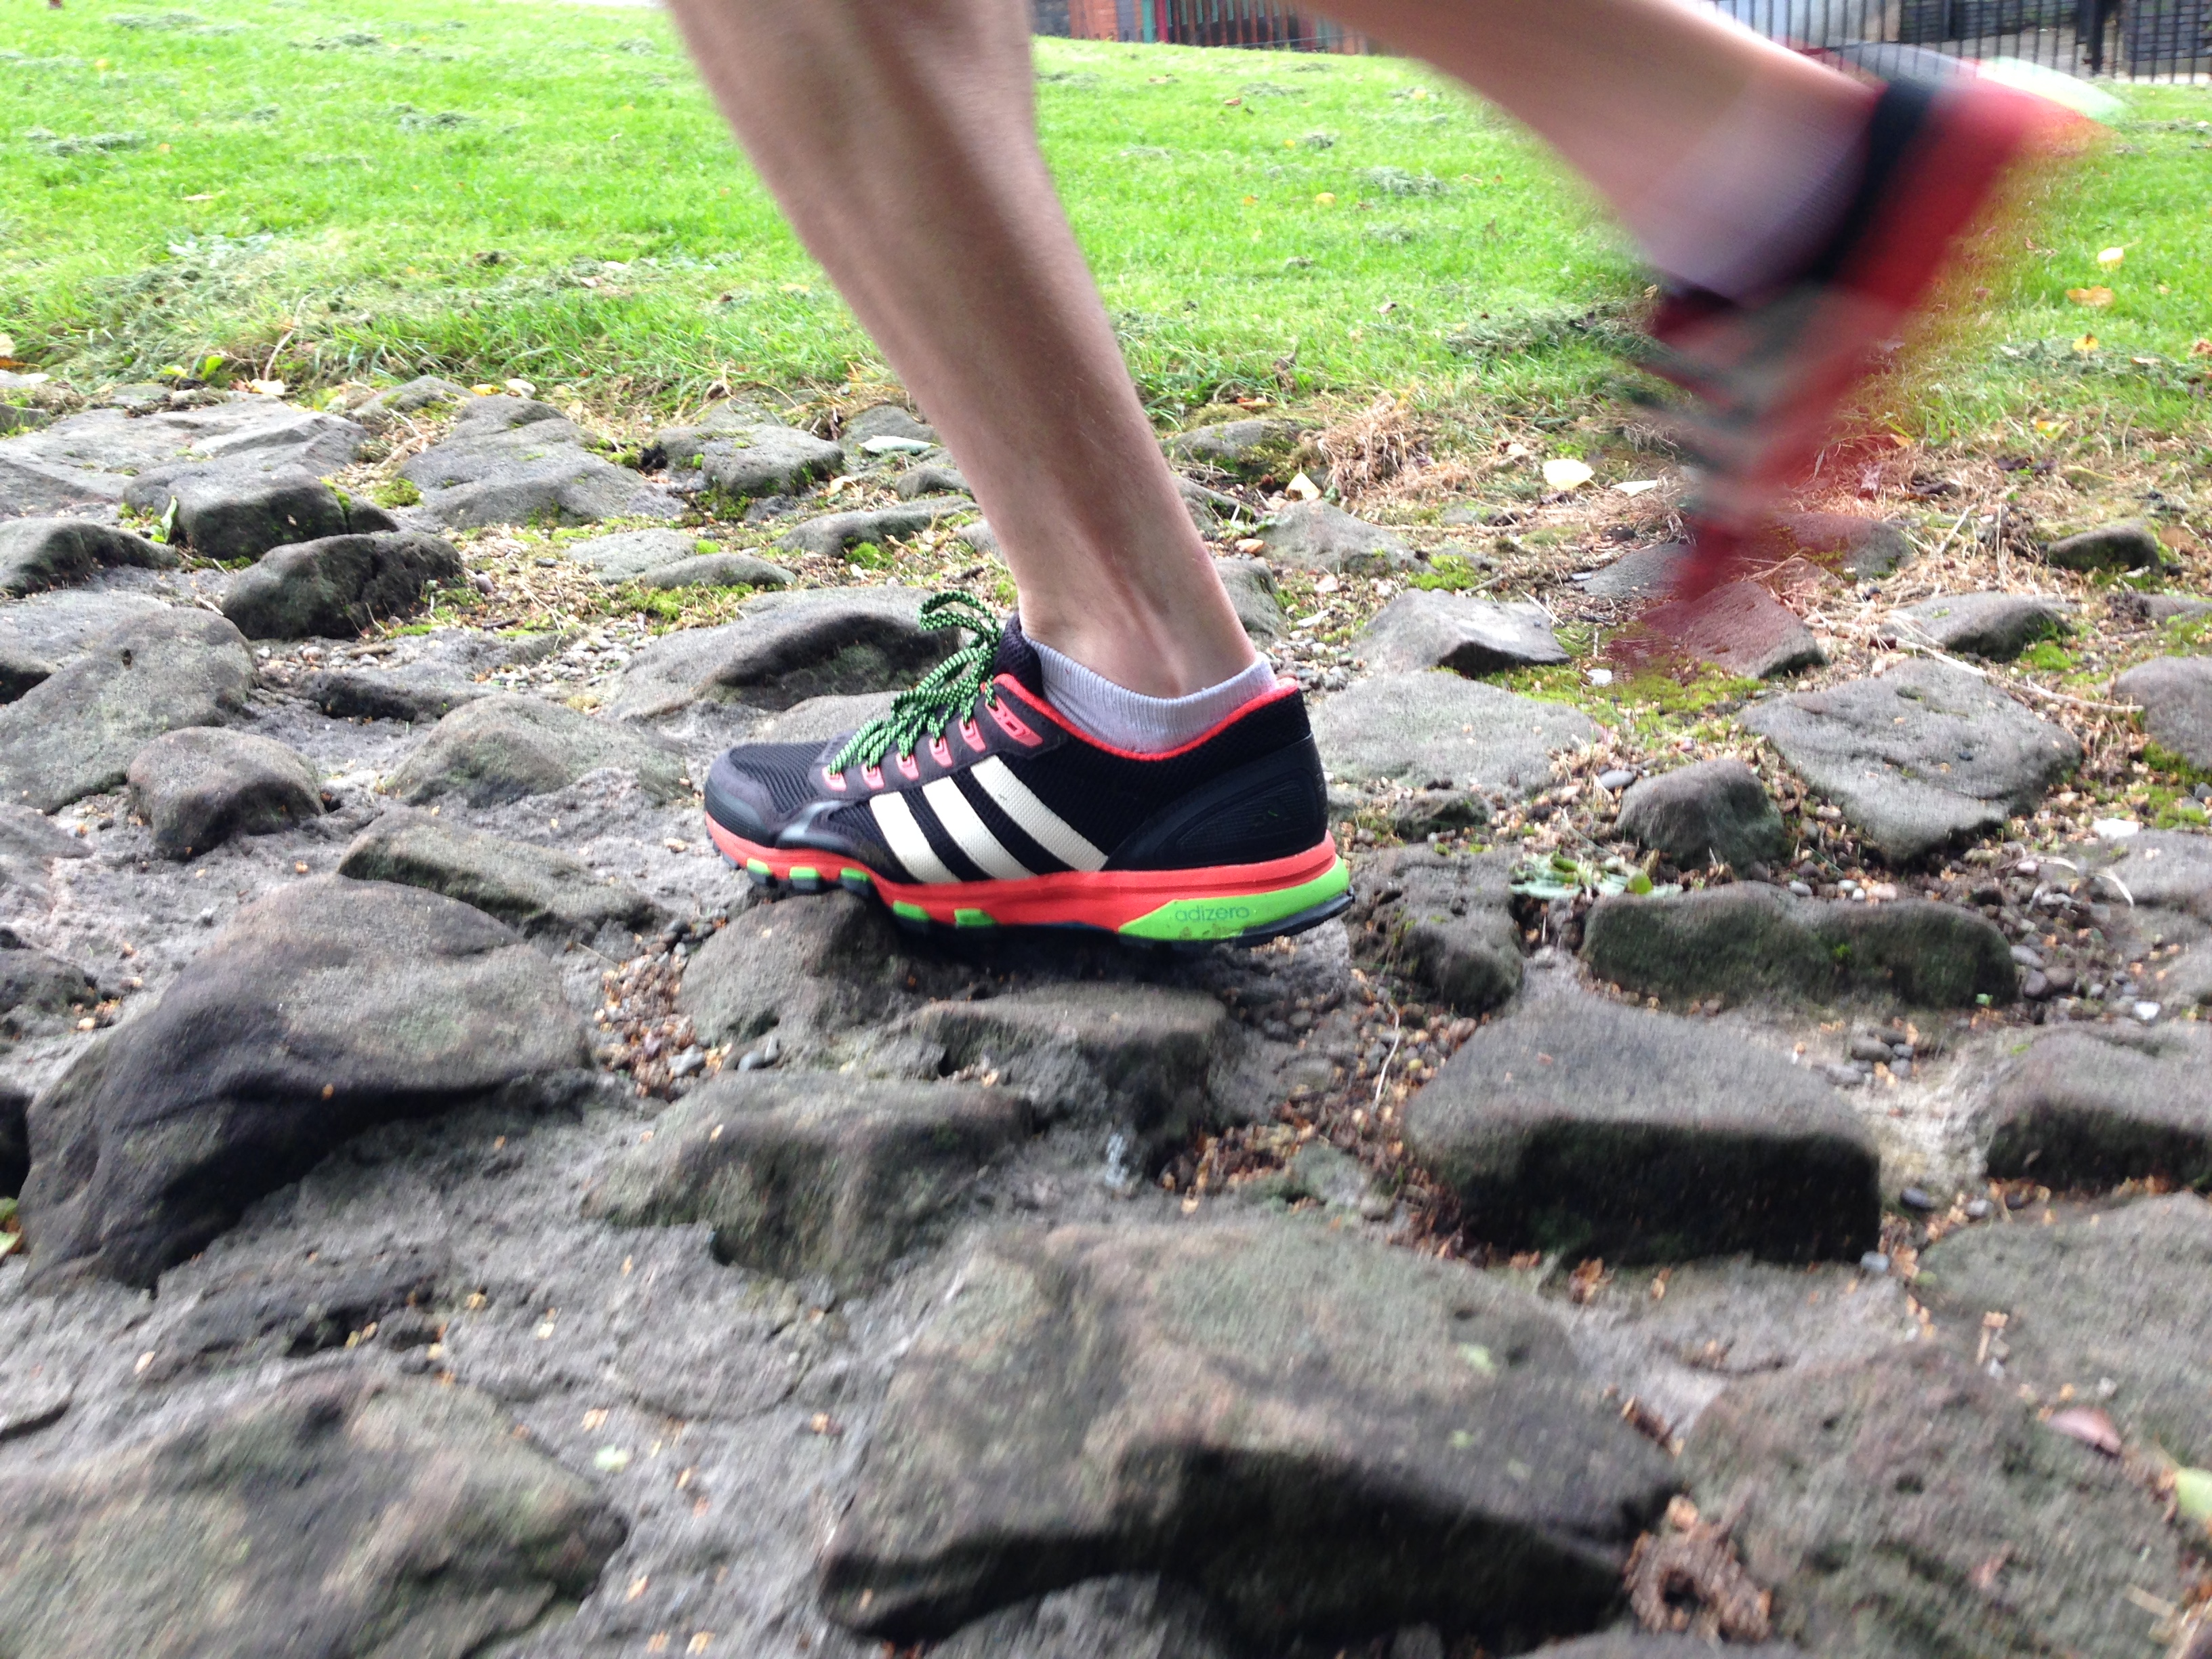 3b5bf5e4d The adidas adiZero XT 5 trail running shoe is a superb all rounder  combining good looks with even better performance features equipping you  with all the ...